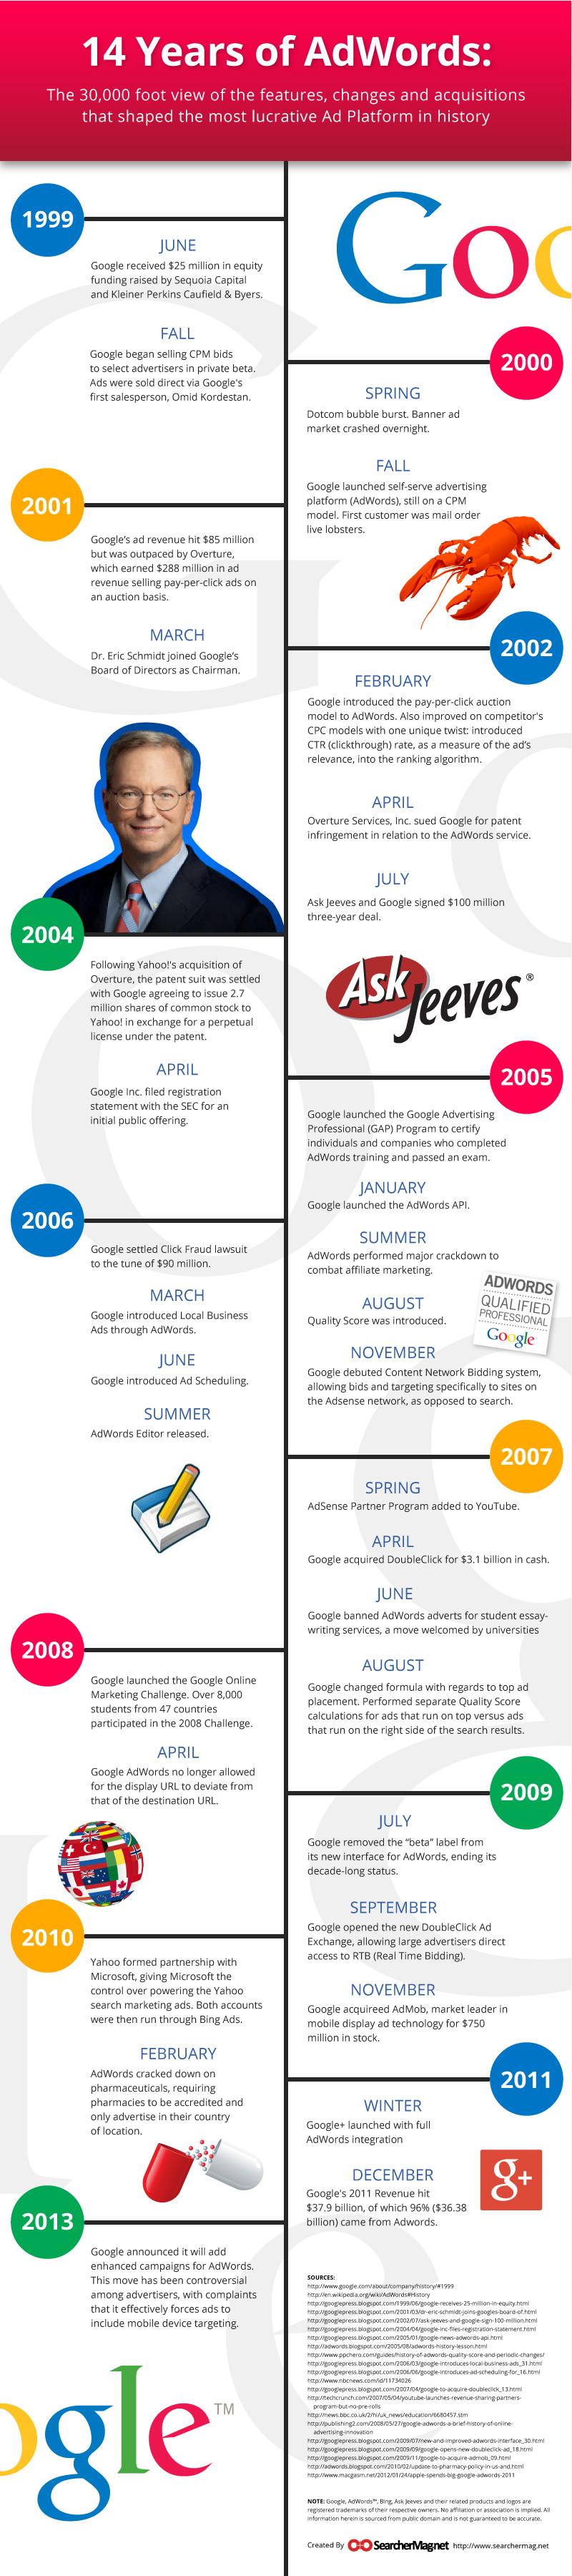 This infographic takes a look back at the 14 year history of Adwords.